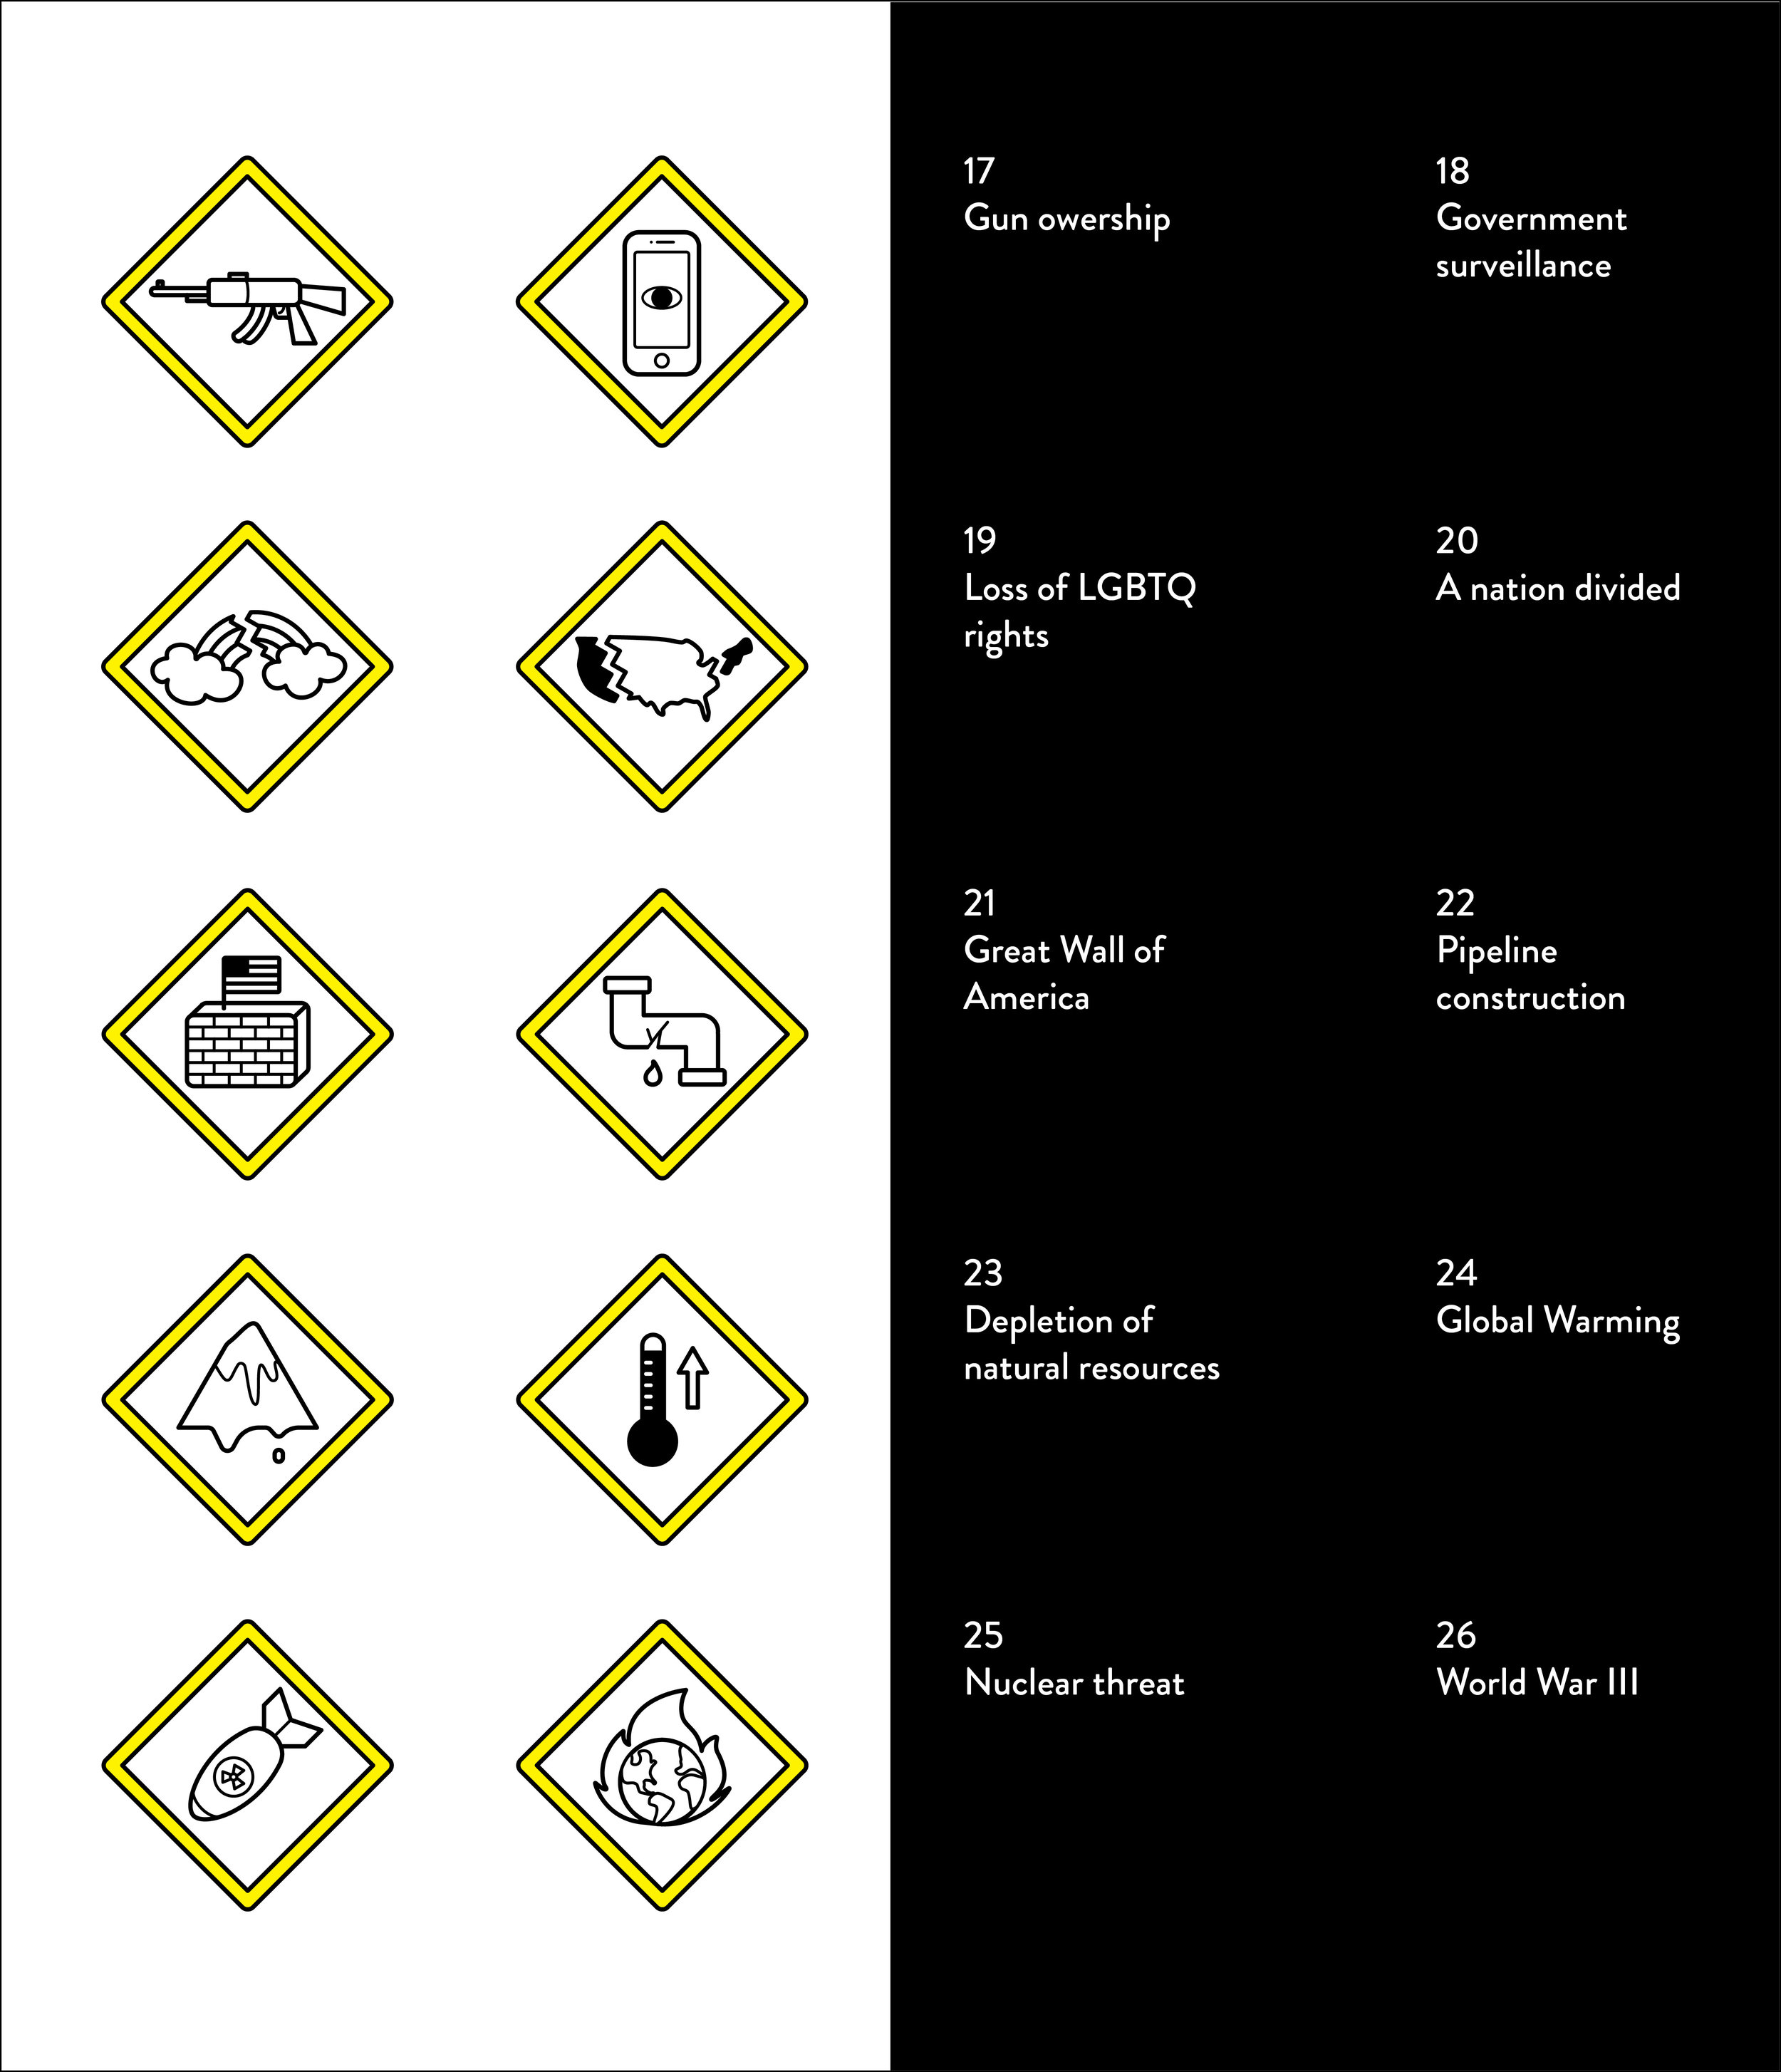 newhazards-icons-final-40.jpg